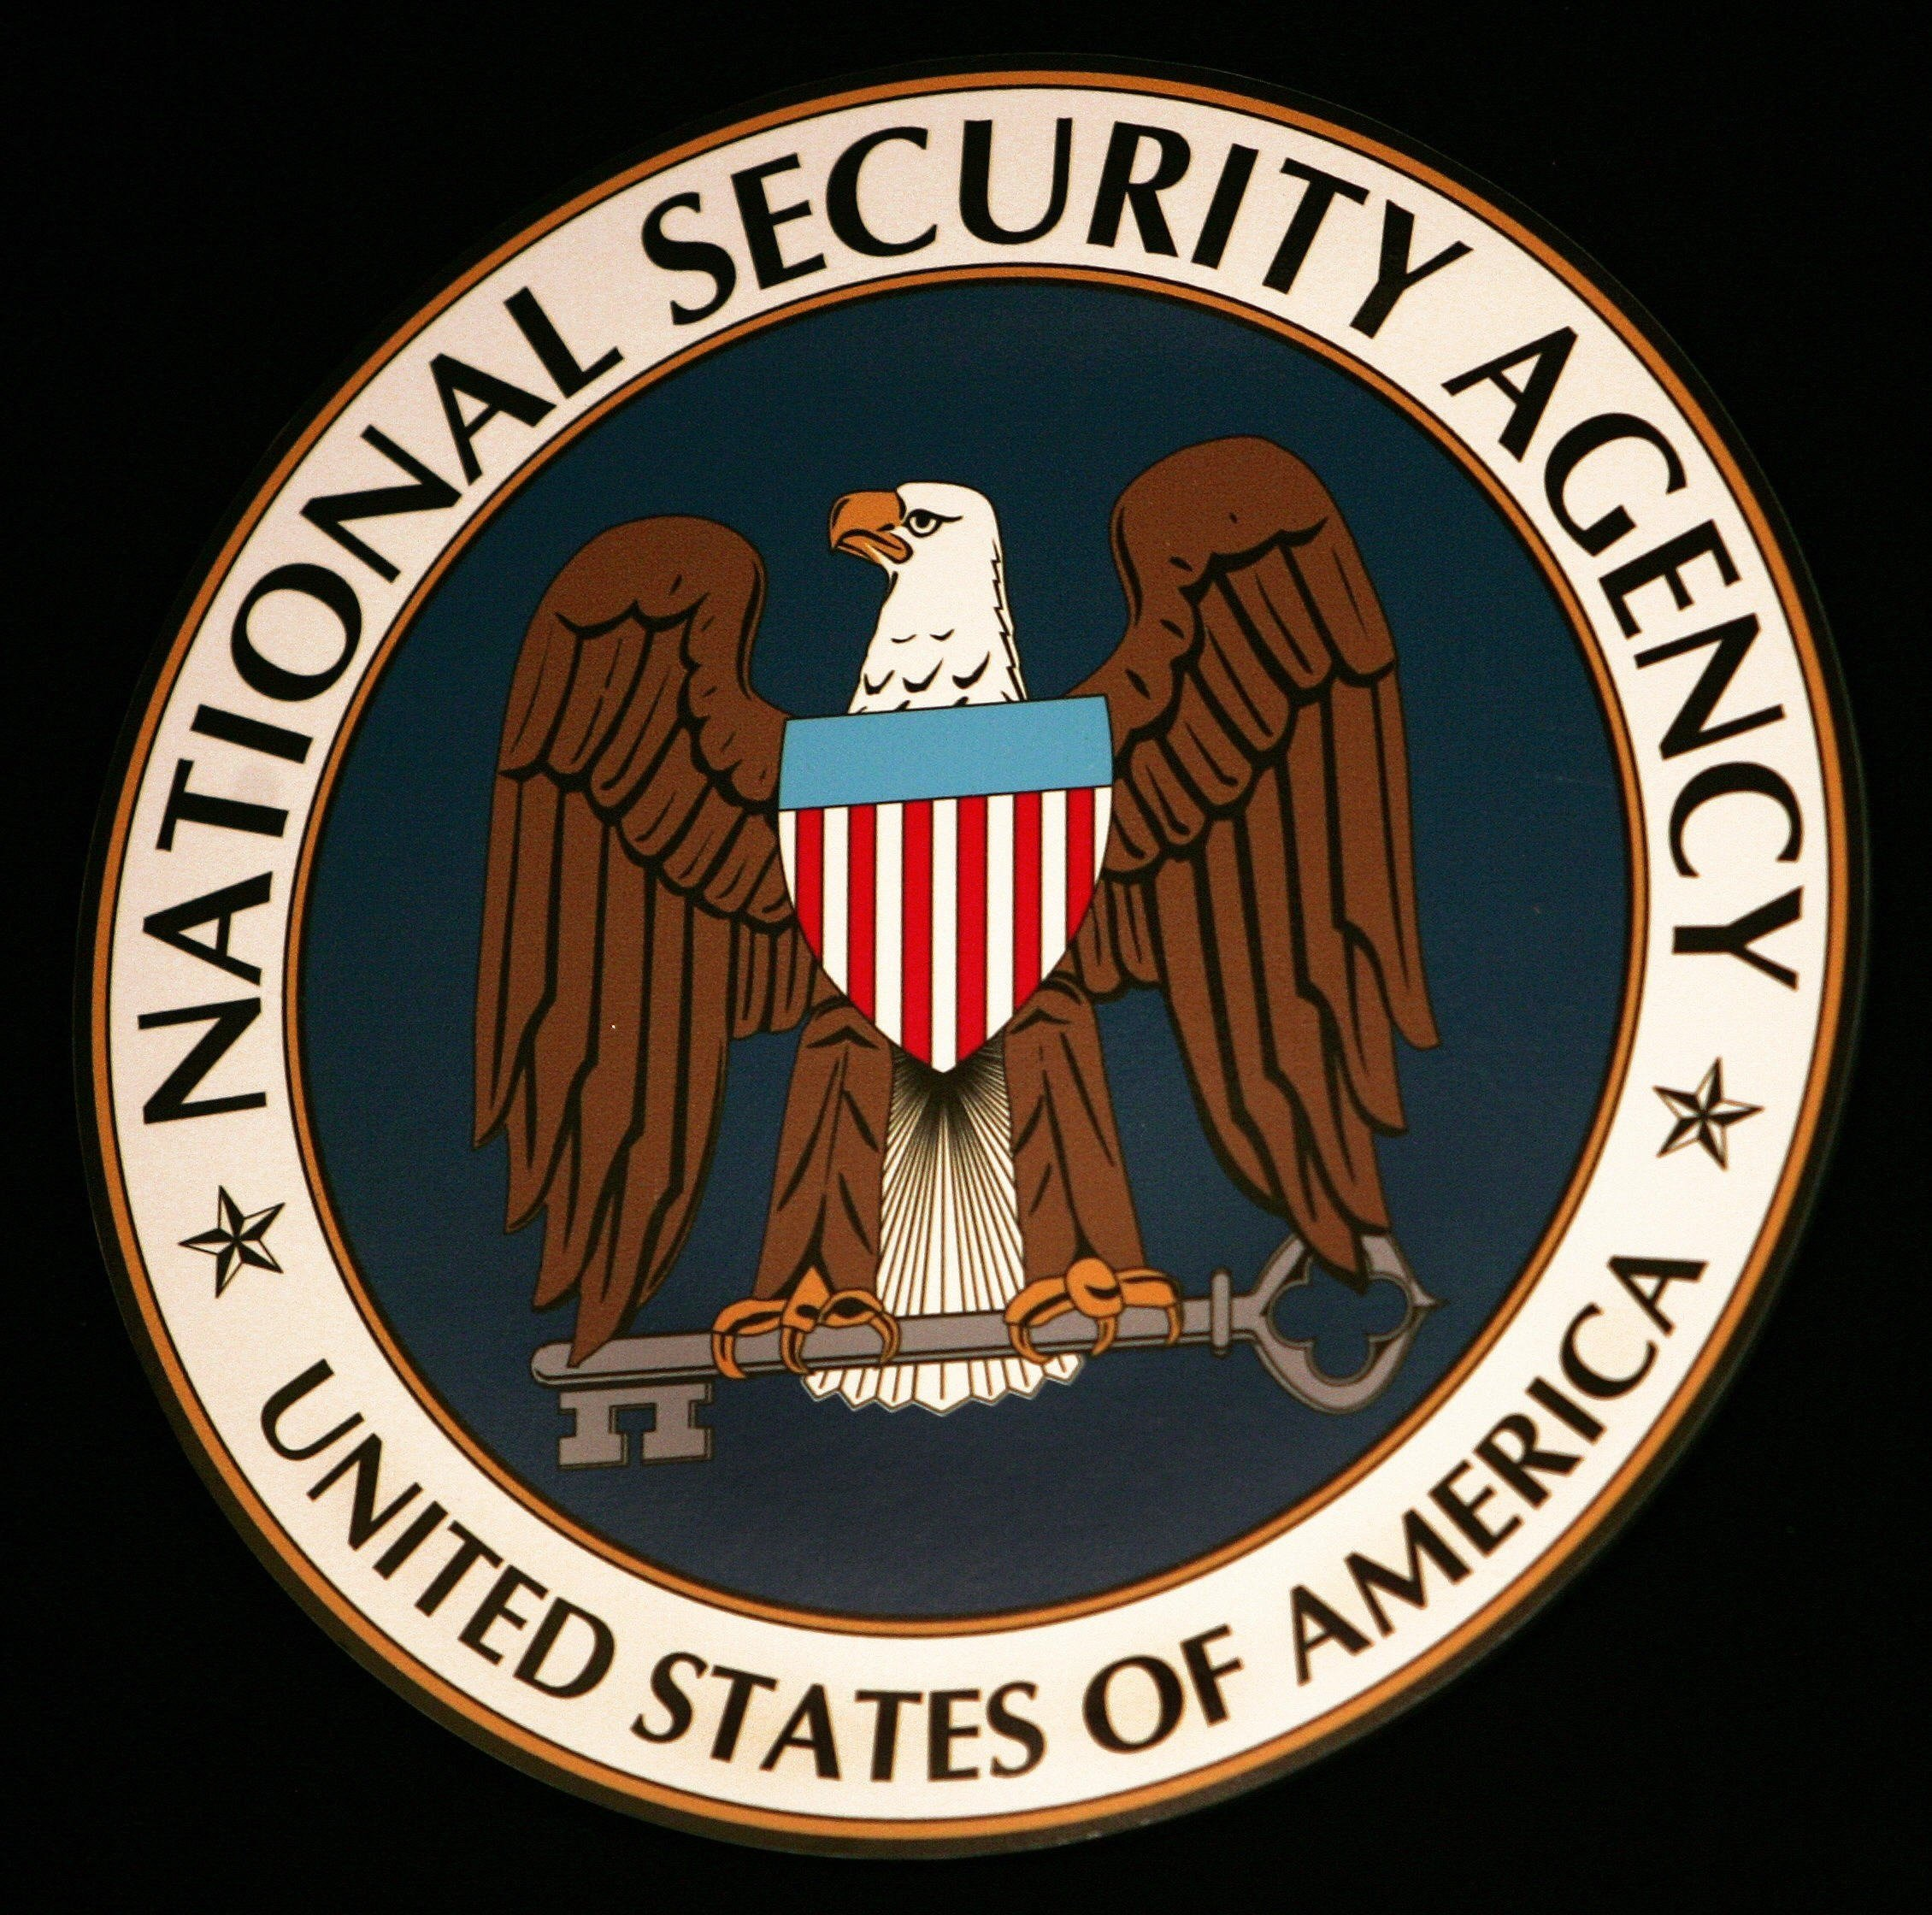 This image is for use with this specific article only.** A former National Security Agency employee pleaded guilty to taking sensitive national defense information from his workplace and storing it at his residence